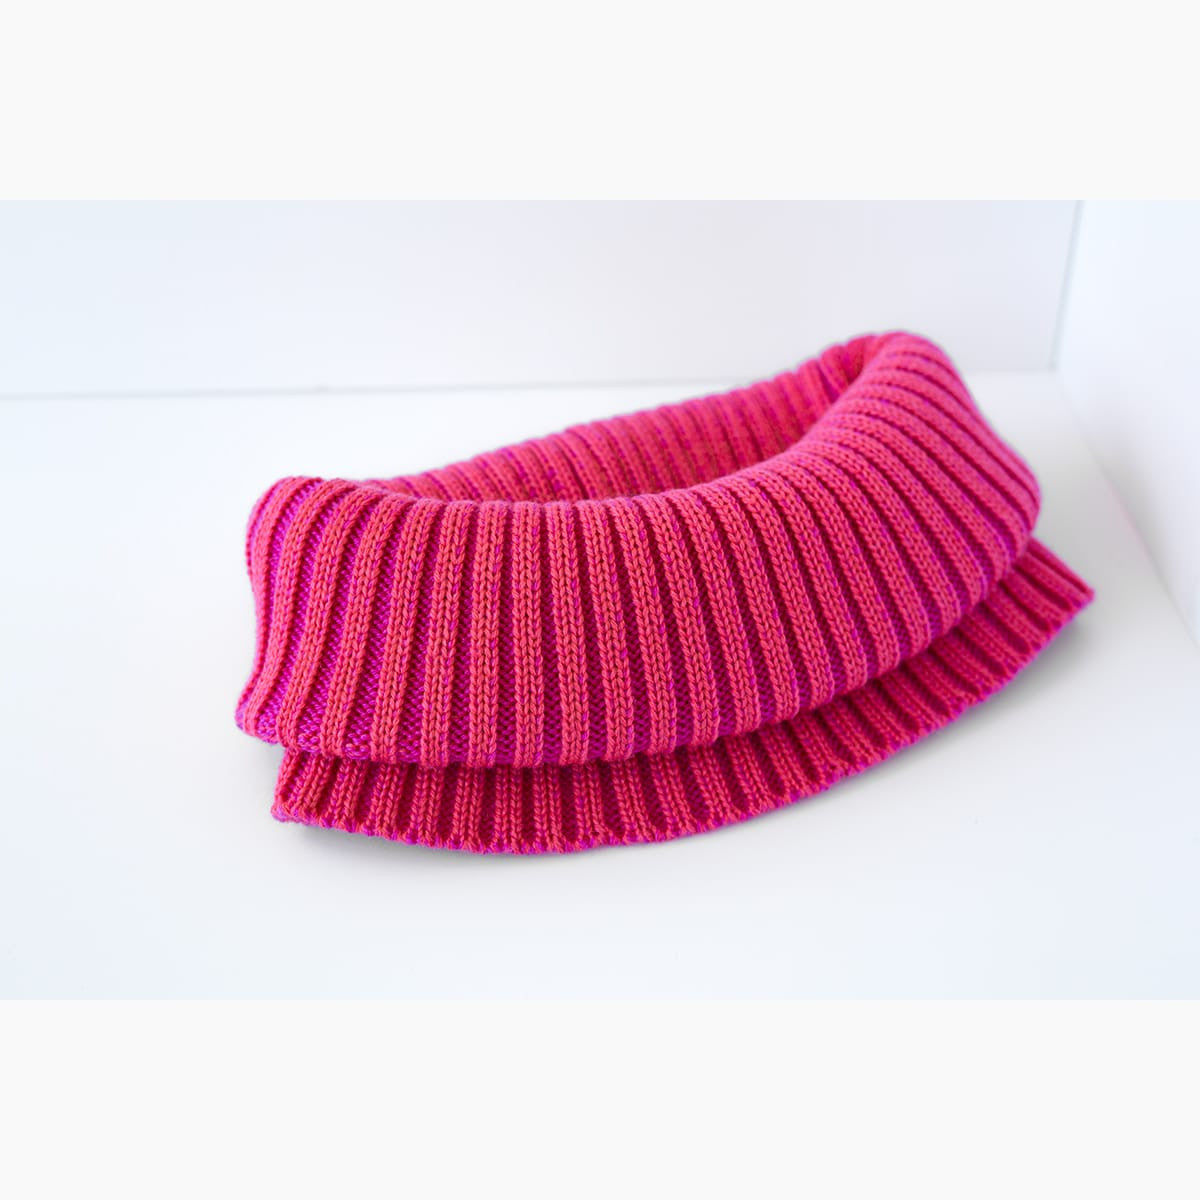 Neck scarf - hot pink and salmon